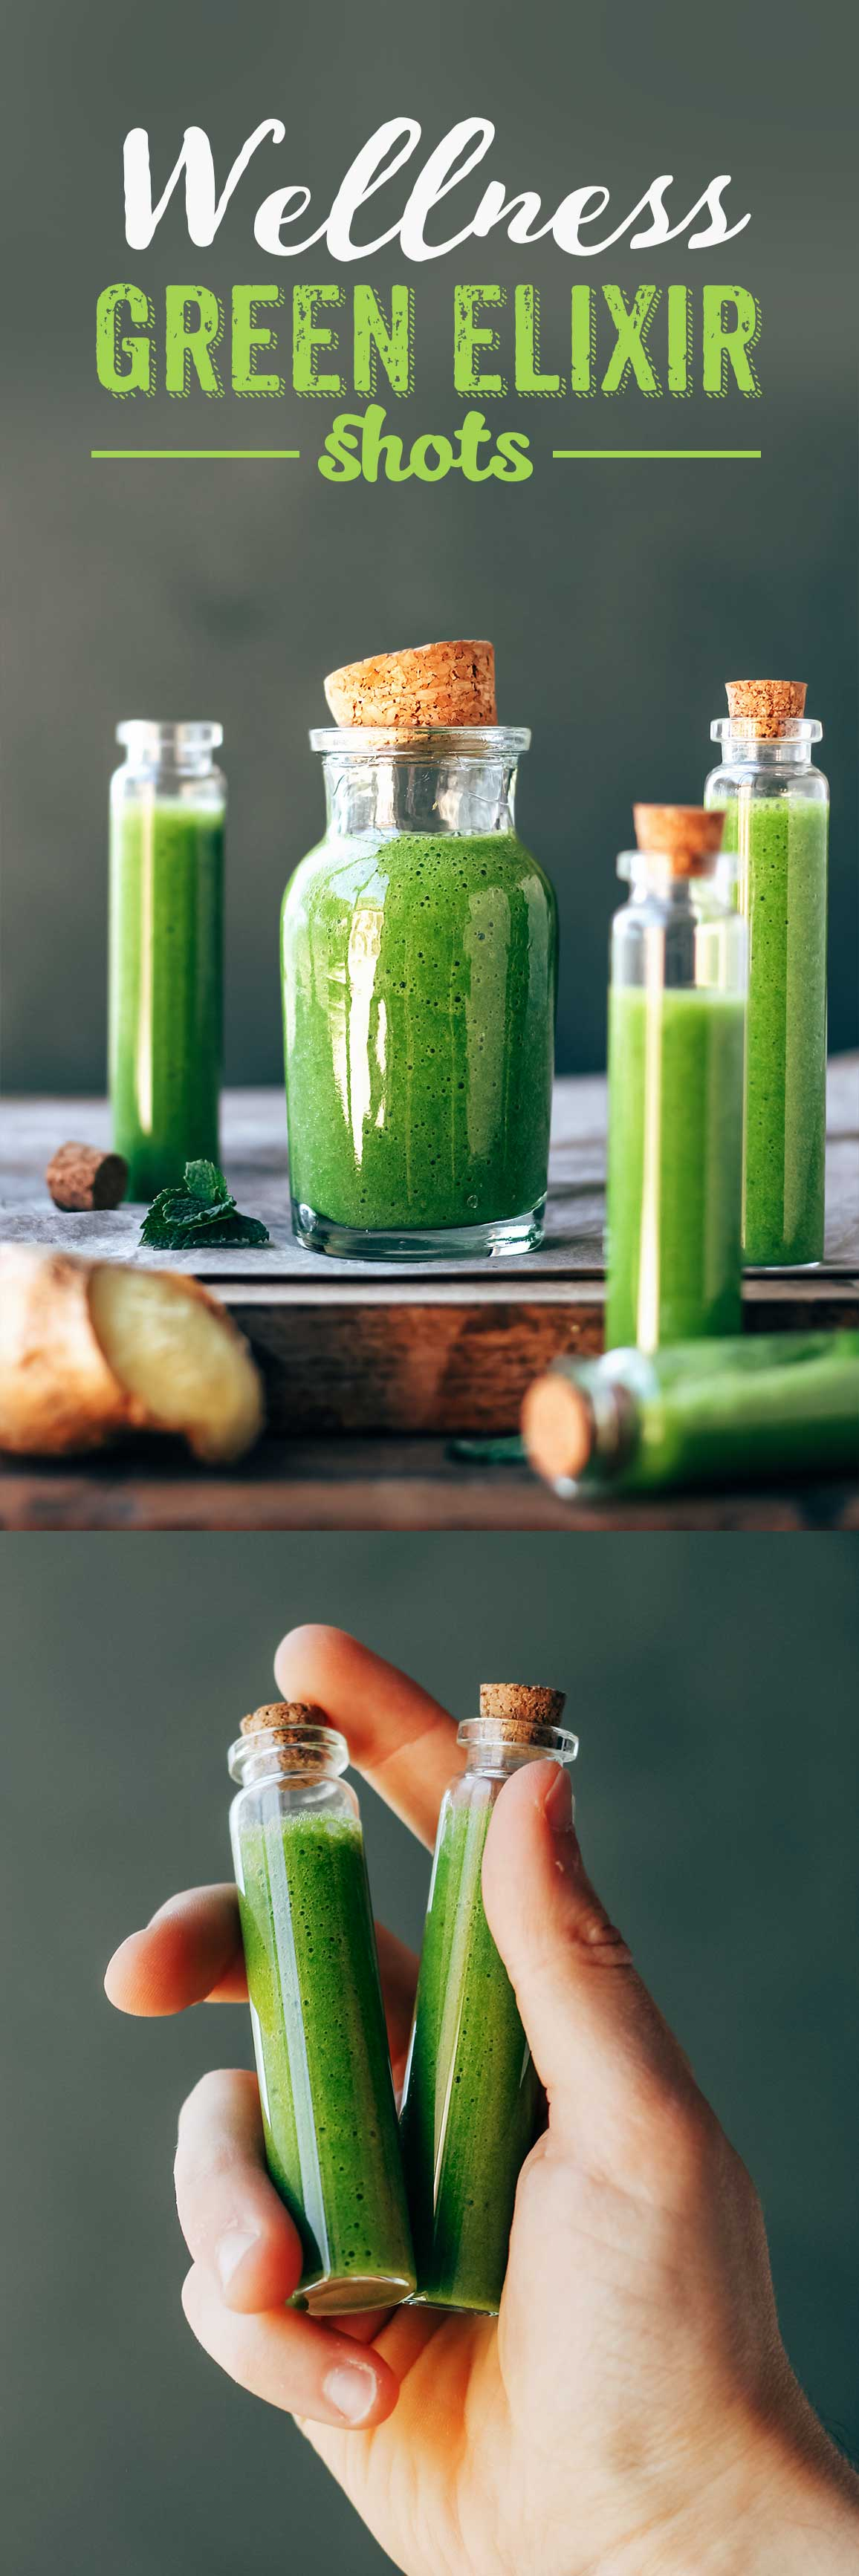 Wellness Green Elixir Shots